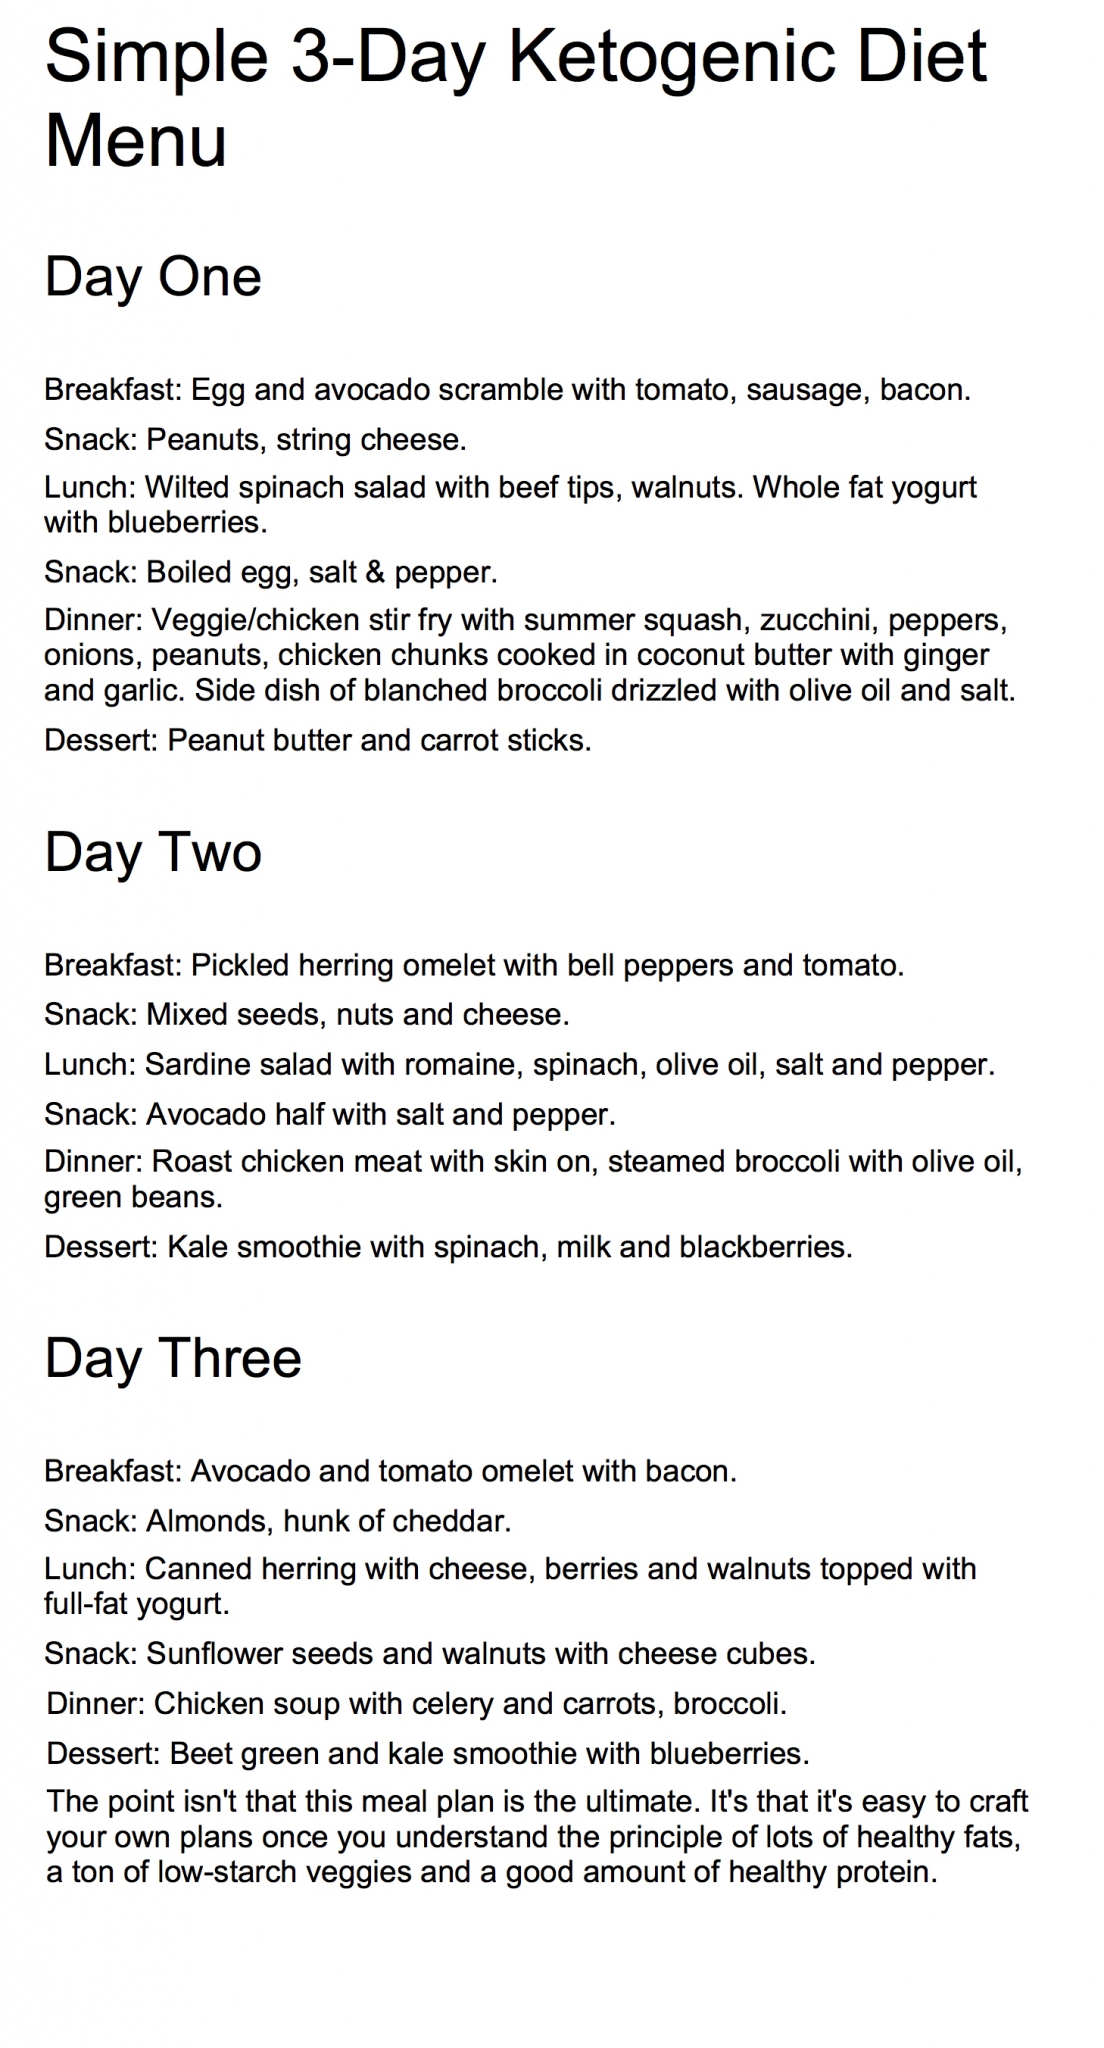 A Simple Ketogenic Diet Menu